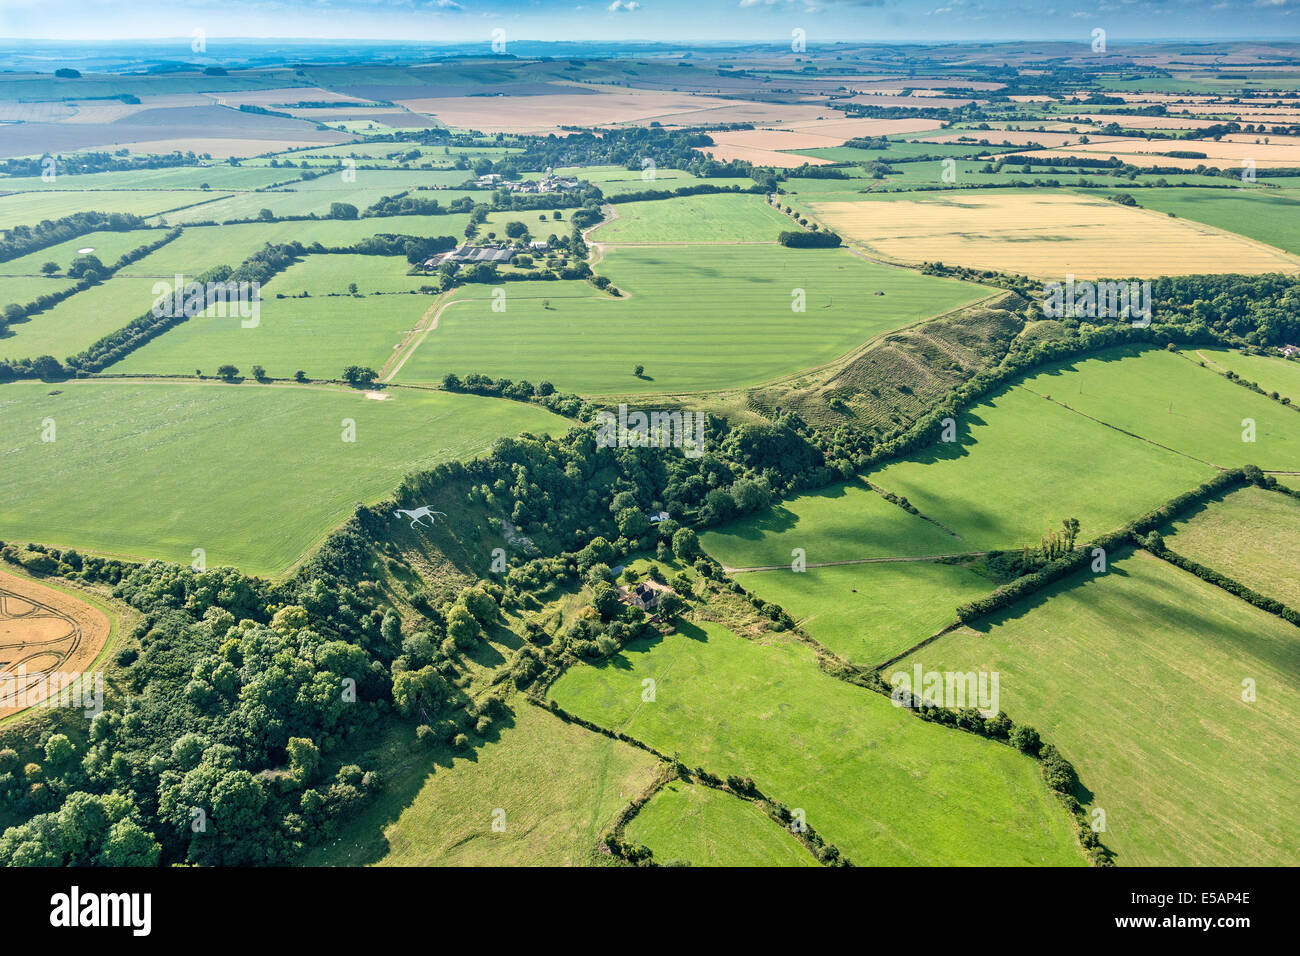 Pleasing Hinton Stock Photos  Hinton Stock Images  Alamy With Excellent Aerial View Of The White Horse At Broad Town Or Broad Hinton Nr Royal  Wootton With Enchanting Garden Benches At Bq Also Hilton Garden Inn Frankfurt In Addition Rose Garden Botanical Gardens And Mgm Grand Garden As Well As Houses In Garden City Ny Additionally What Is A Garden From Alamycom With   Excellent Hinton Stock Photos  Hinton Stock Images  Alamy With Enchanting Aerial View Of The White Horse At Broad Town Or Broad Hinton Nr Royal  Wootton And Pleasing Garden Benches At Bq Also Hilton Garden Inn Frankfurt In Addition Rose Garden Botanical Gardens From Alamycom